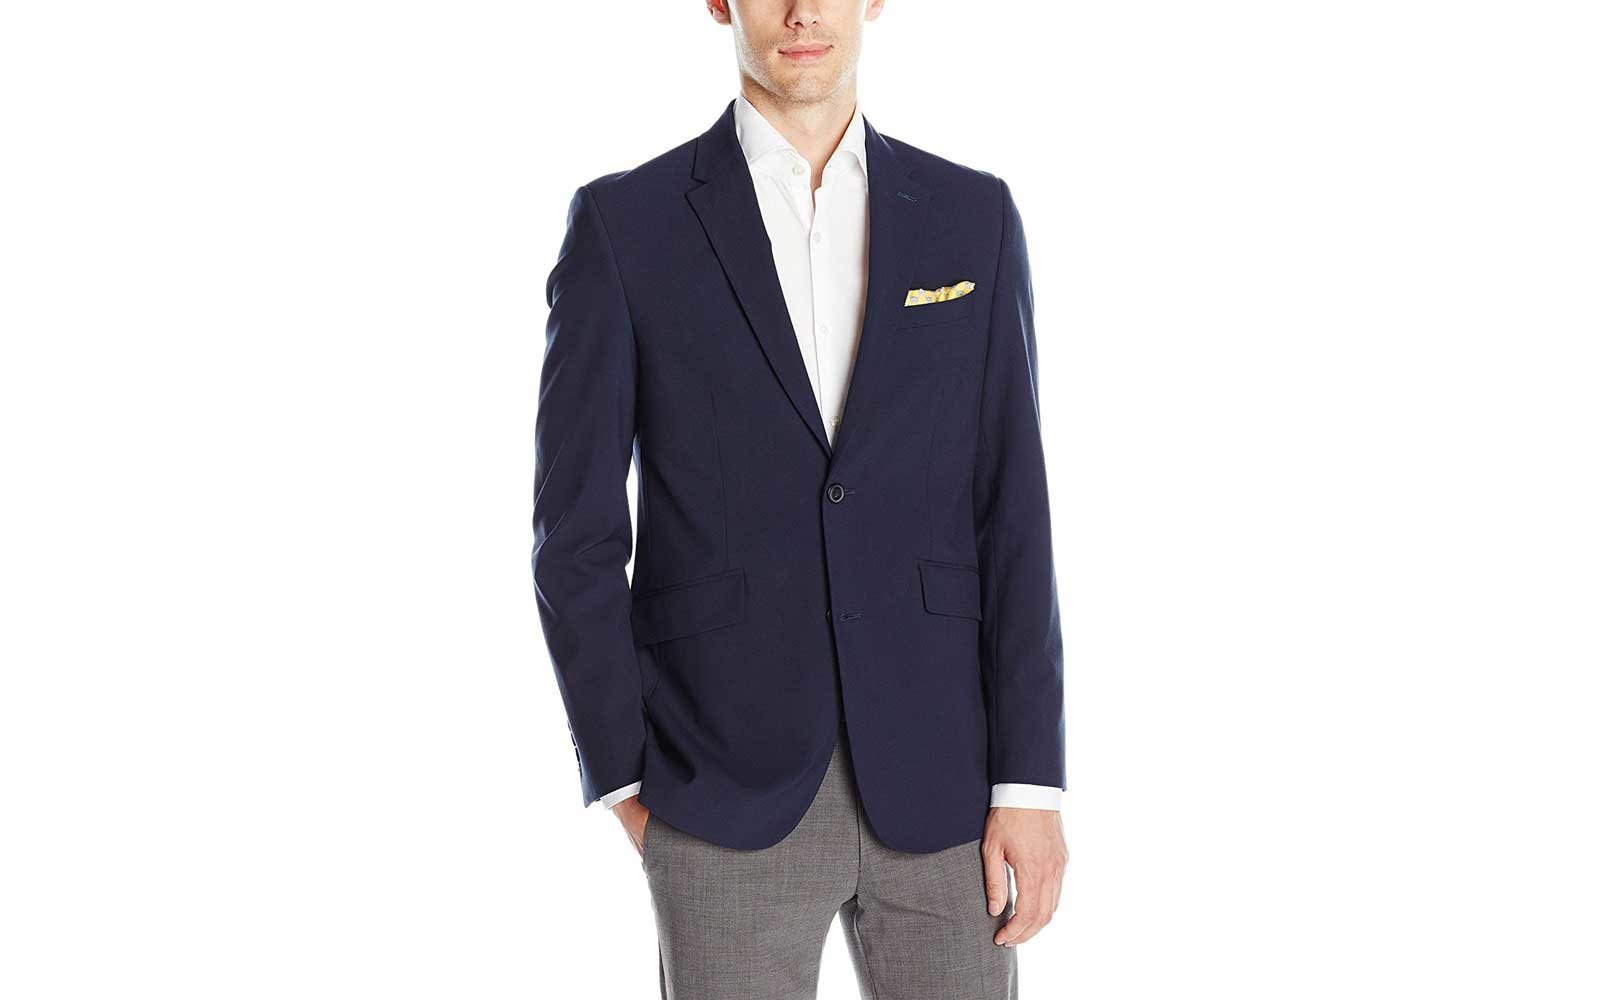 Perry Ellis travel suit